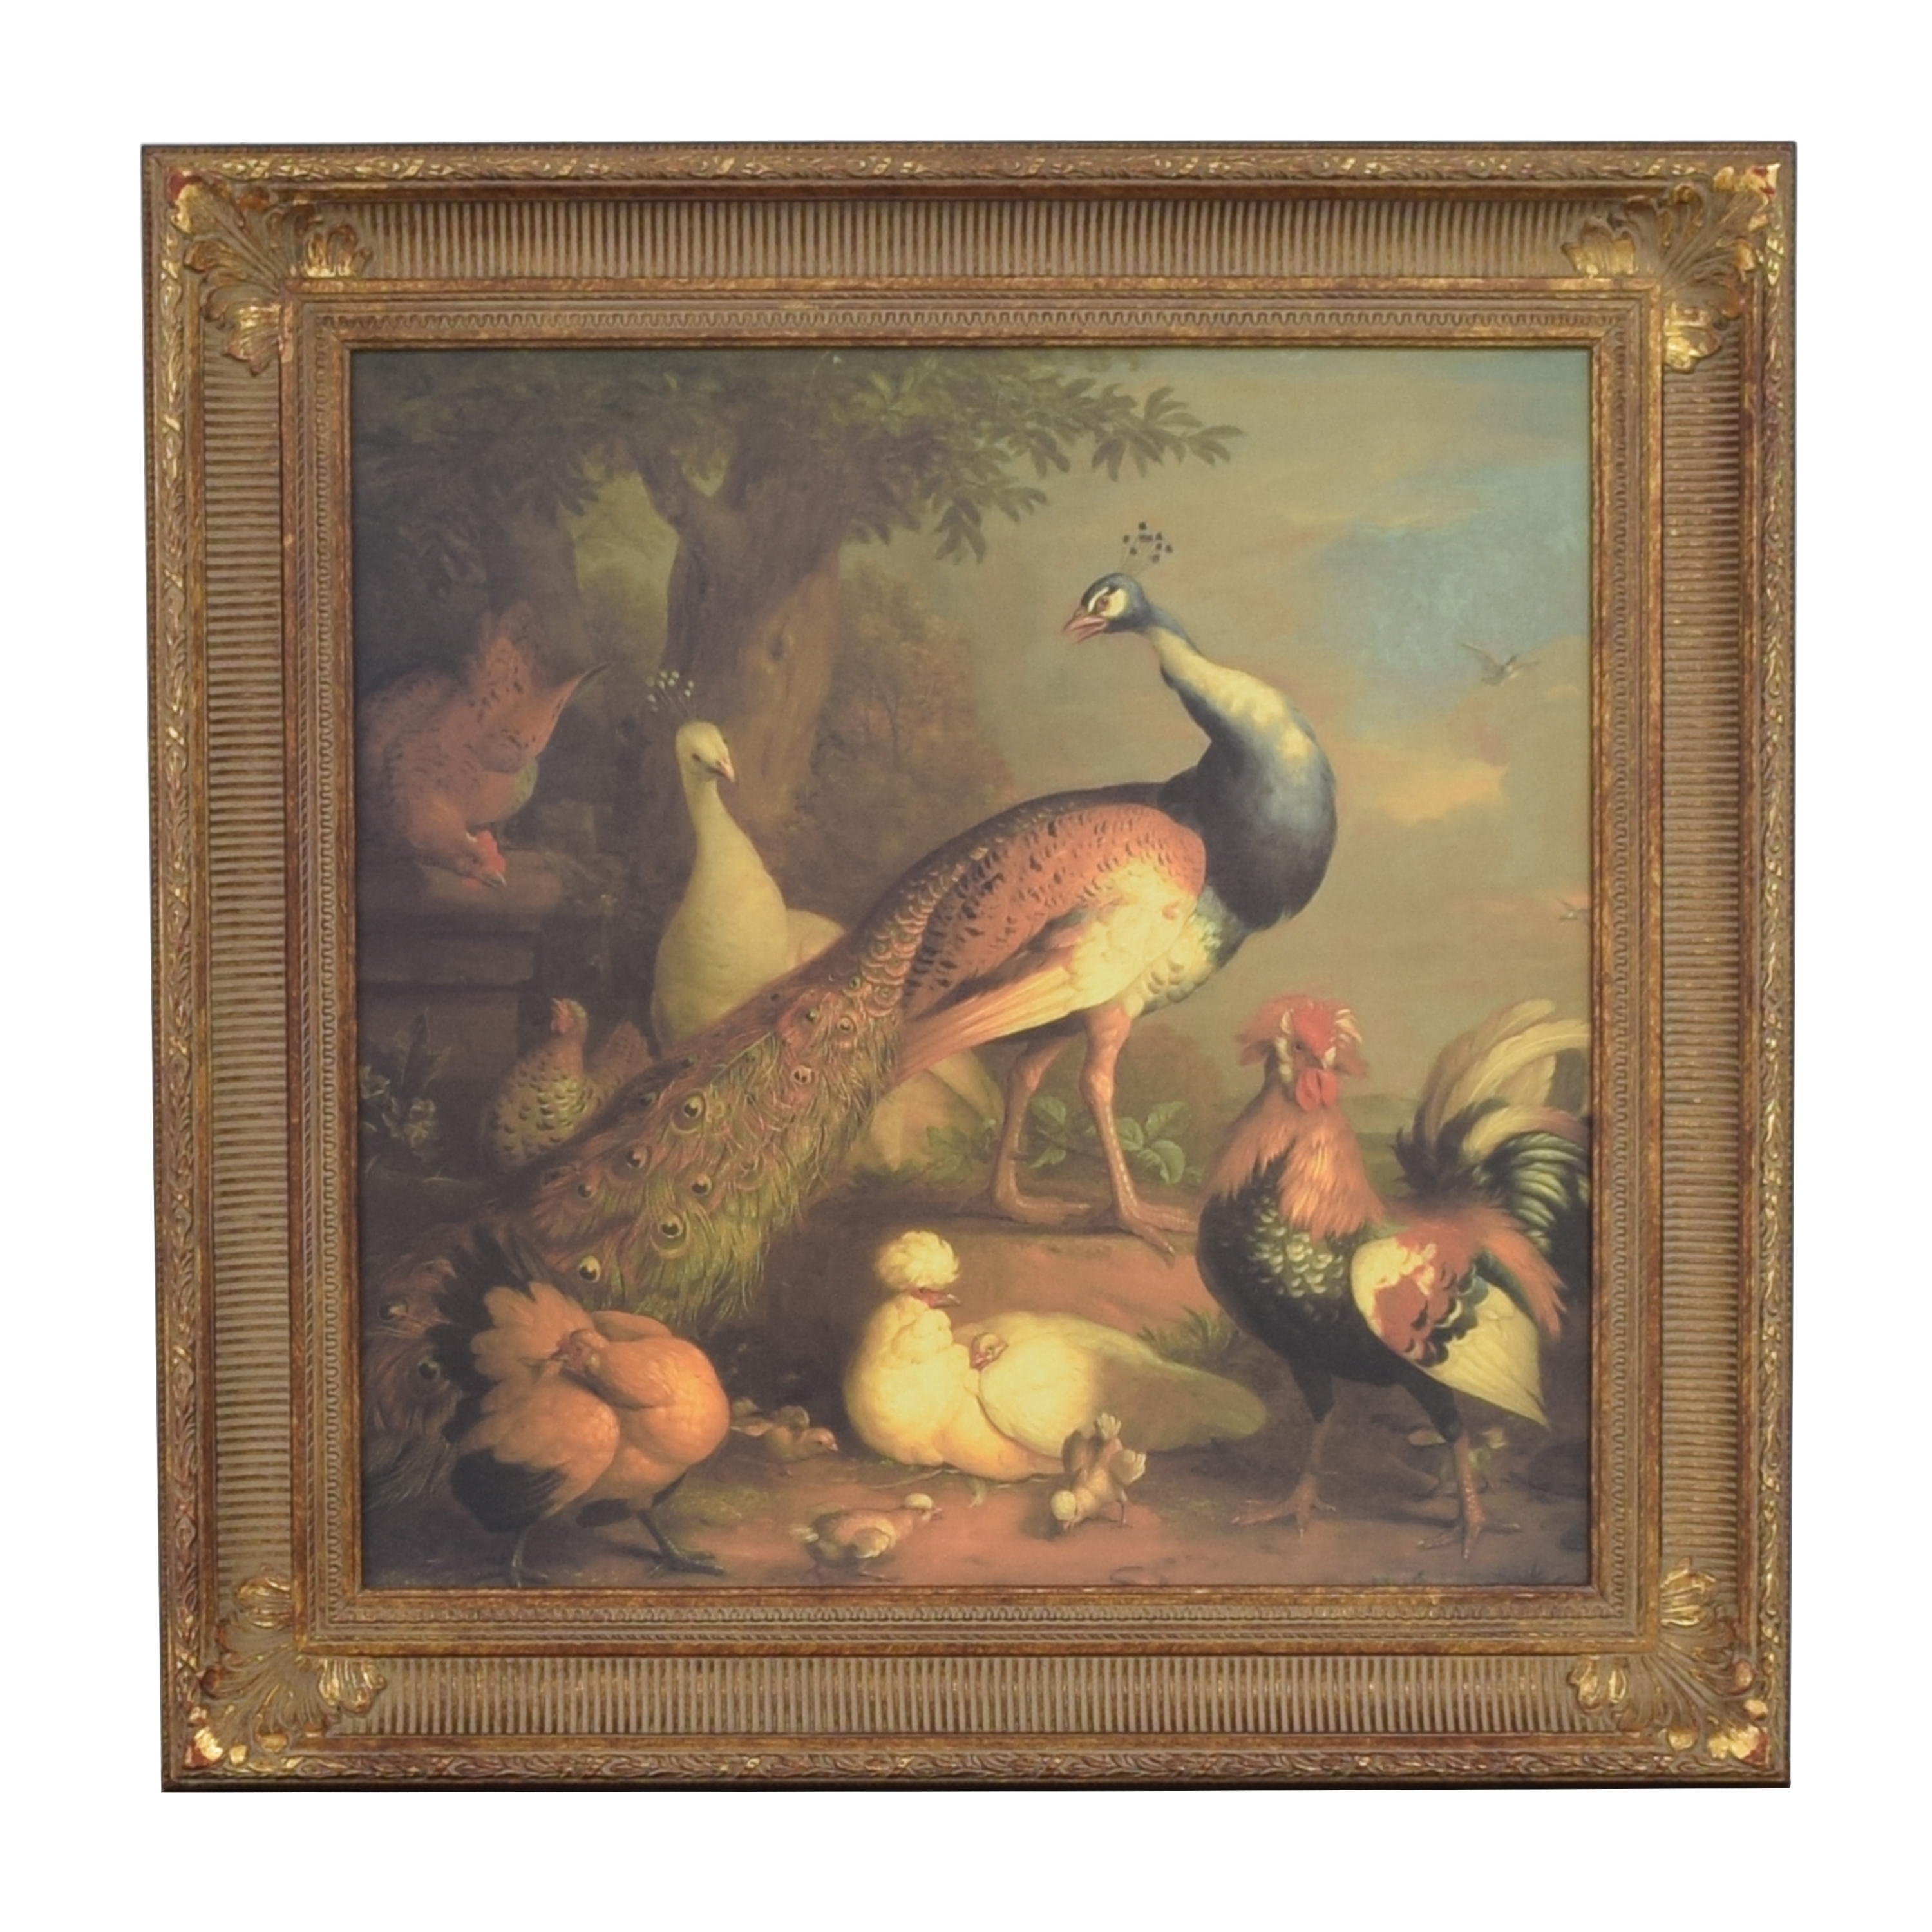 Ethan Allen Ethan Allen a Peacock, a Peahen, and Poultry in a Landscape Wall Art Wall Art